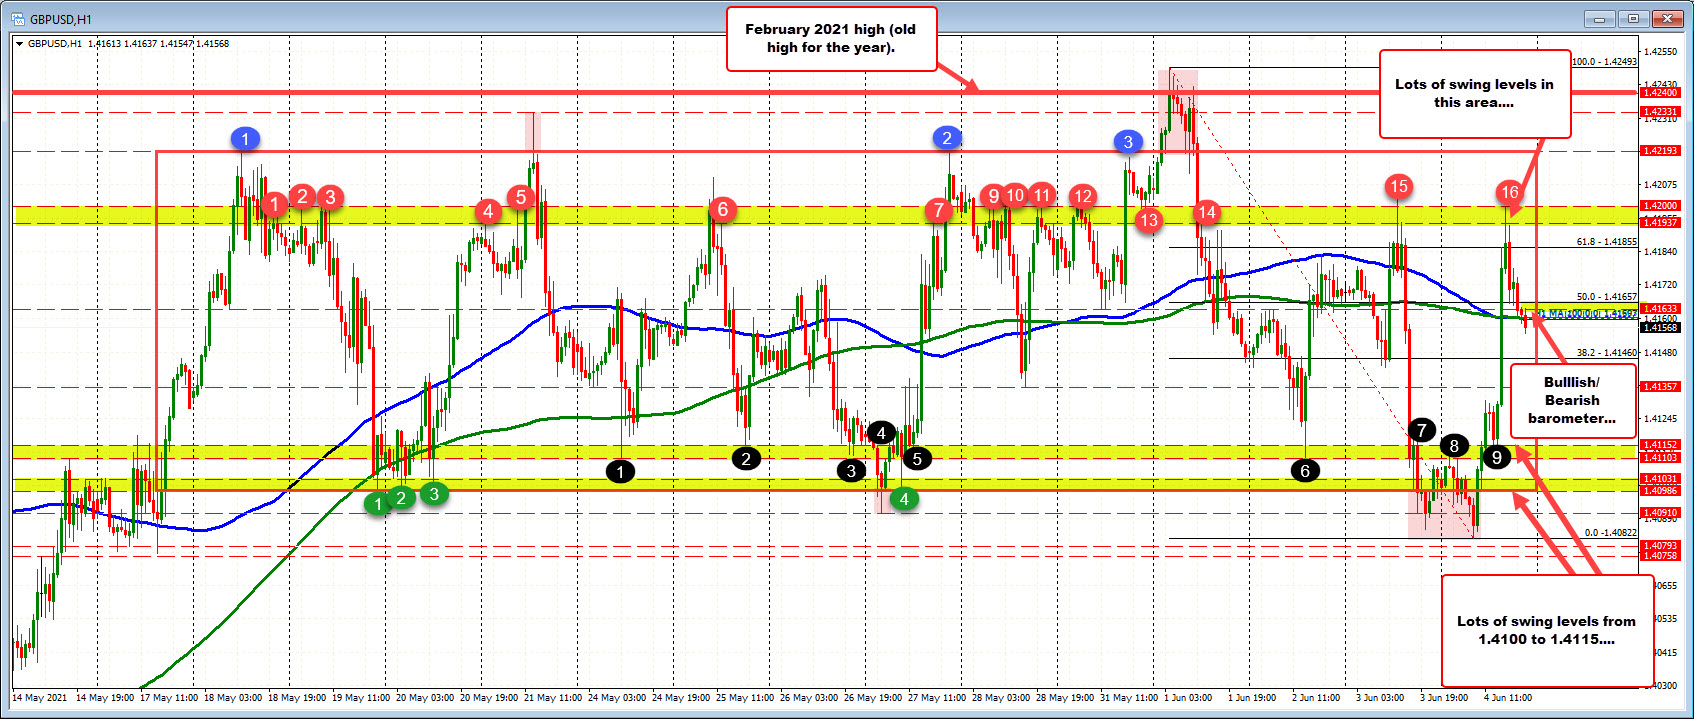 Near 100/200 hour MAs and 50% of theweek's trading range